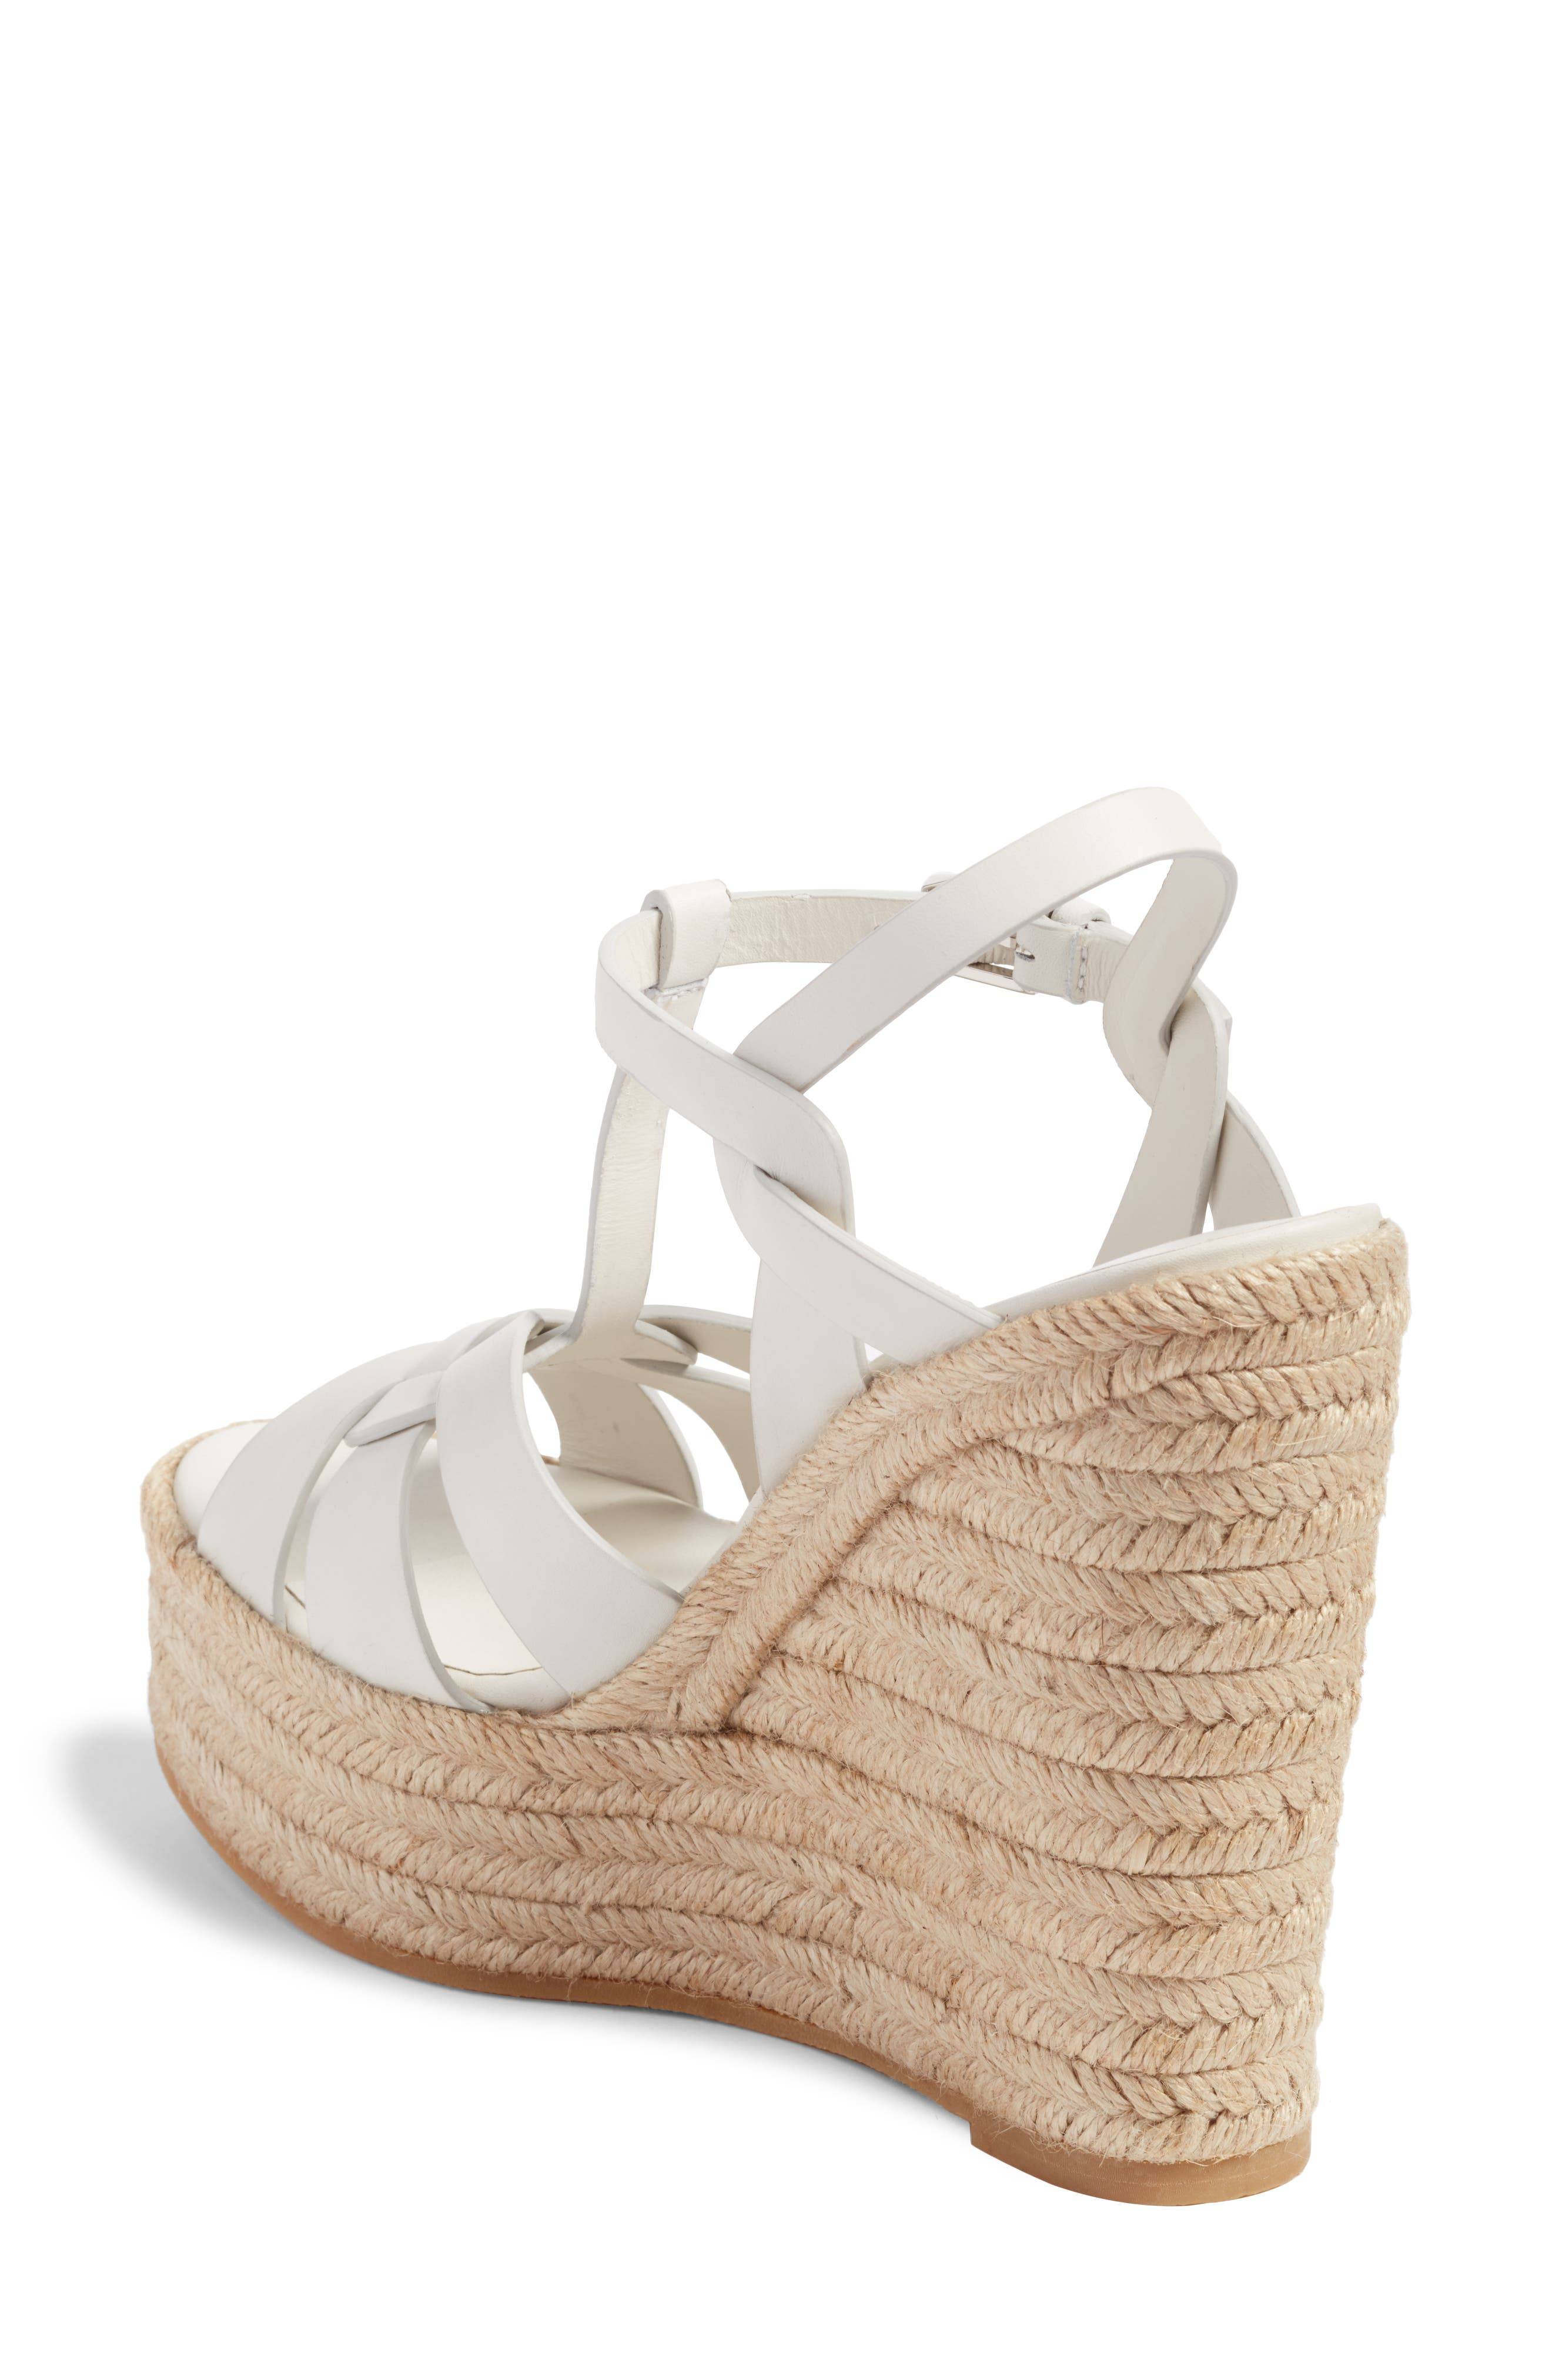 Tribute Espadrille Wedge,                             Alternate thumbnail 2, color,                             White Leather